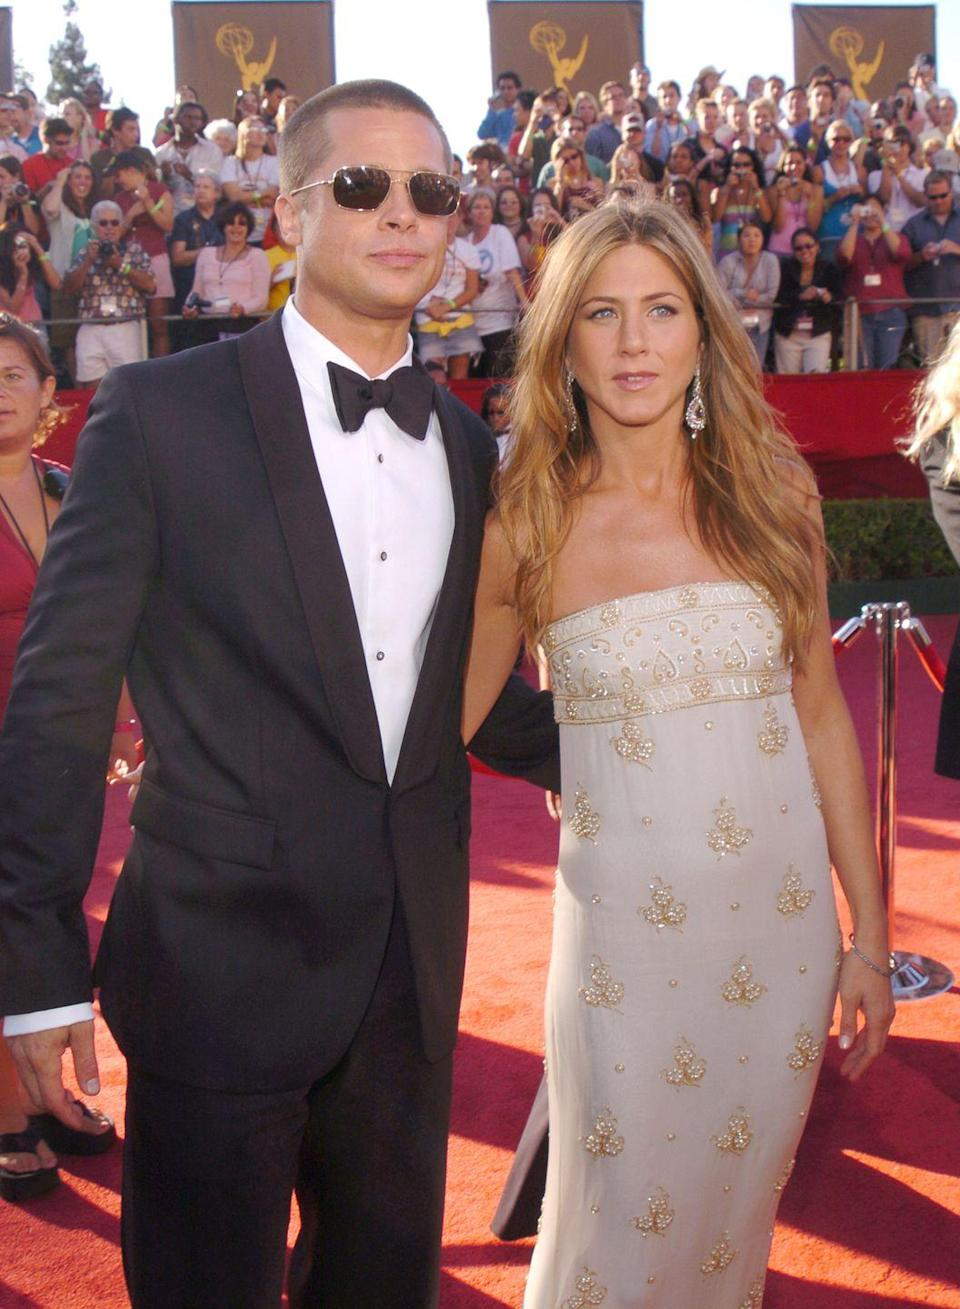 """<p>Pitt and Aniston officially split, offering the below joint <a href=""""http://people.com/archive/cover-story-heartbreaker-vol-63-no-3/"""" rel=""""nofollow noopener"""" target=""""_blank"""" data-ylk=""""slk:statement"""" class=""""link rapid-noclick-resp"""">statement</a>:</p><p>""""We would like to announce that after seven years together we have decided to formally separate. For those who follow these sorts of things, we would like to explain that our separation is not the result of any of the speculation reported by the tabloid media. This decision is the result of much thoughtful consideration. We happily remain committed and caring friends with great love and admiration for one another. We ask in advance for your kindness and sensitivity in the coming months.""""</p>"""